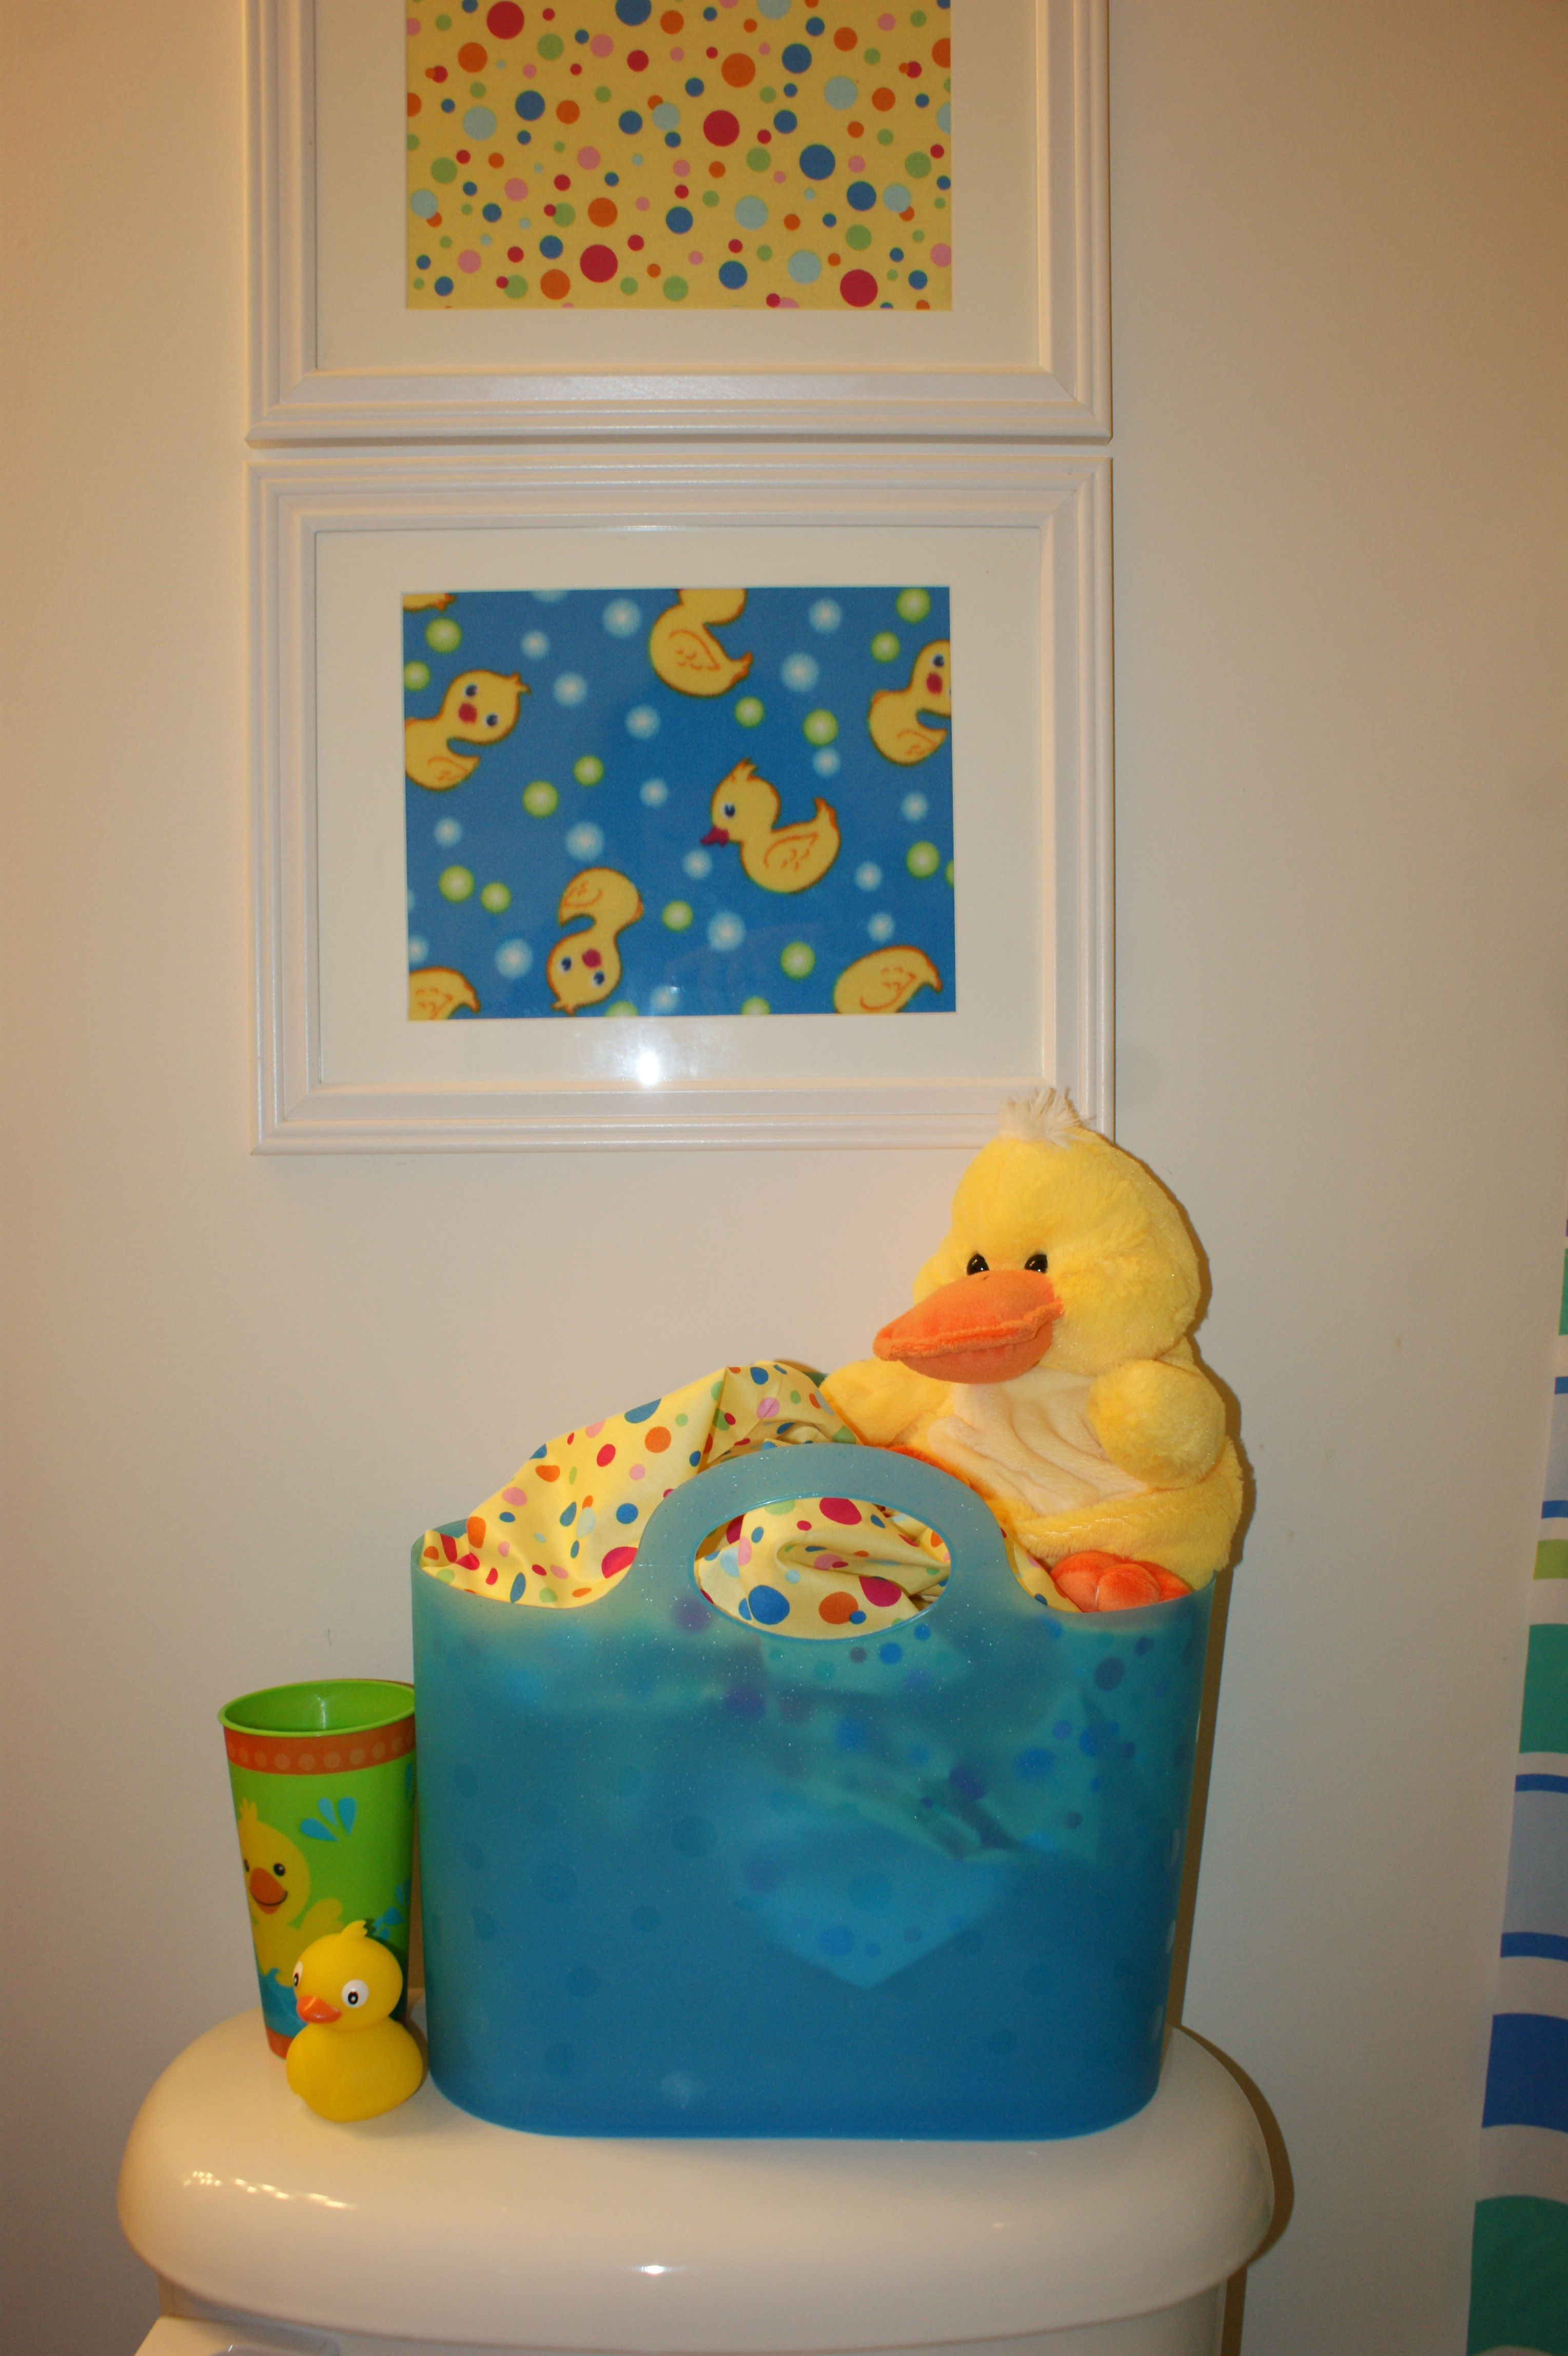 Framed Fabric For Duck Bathroom Pictures